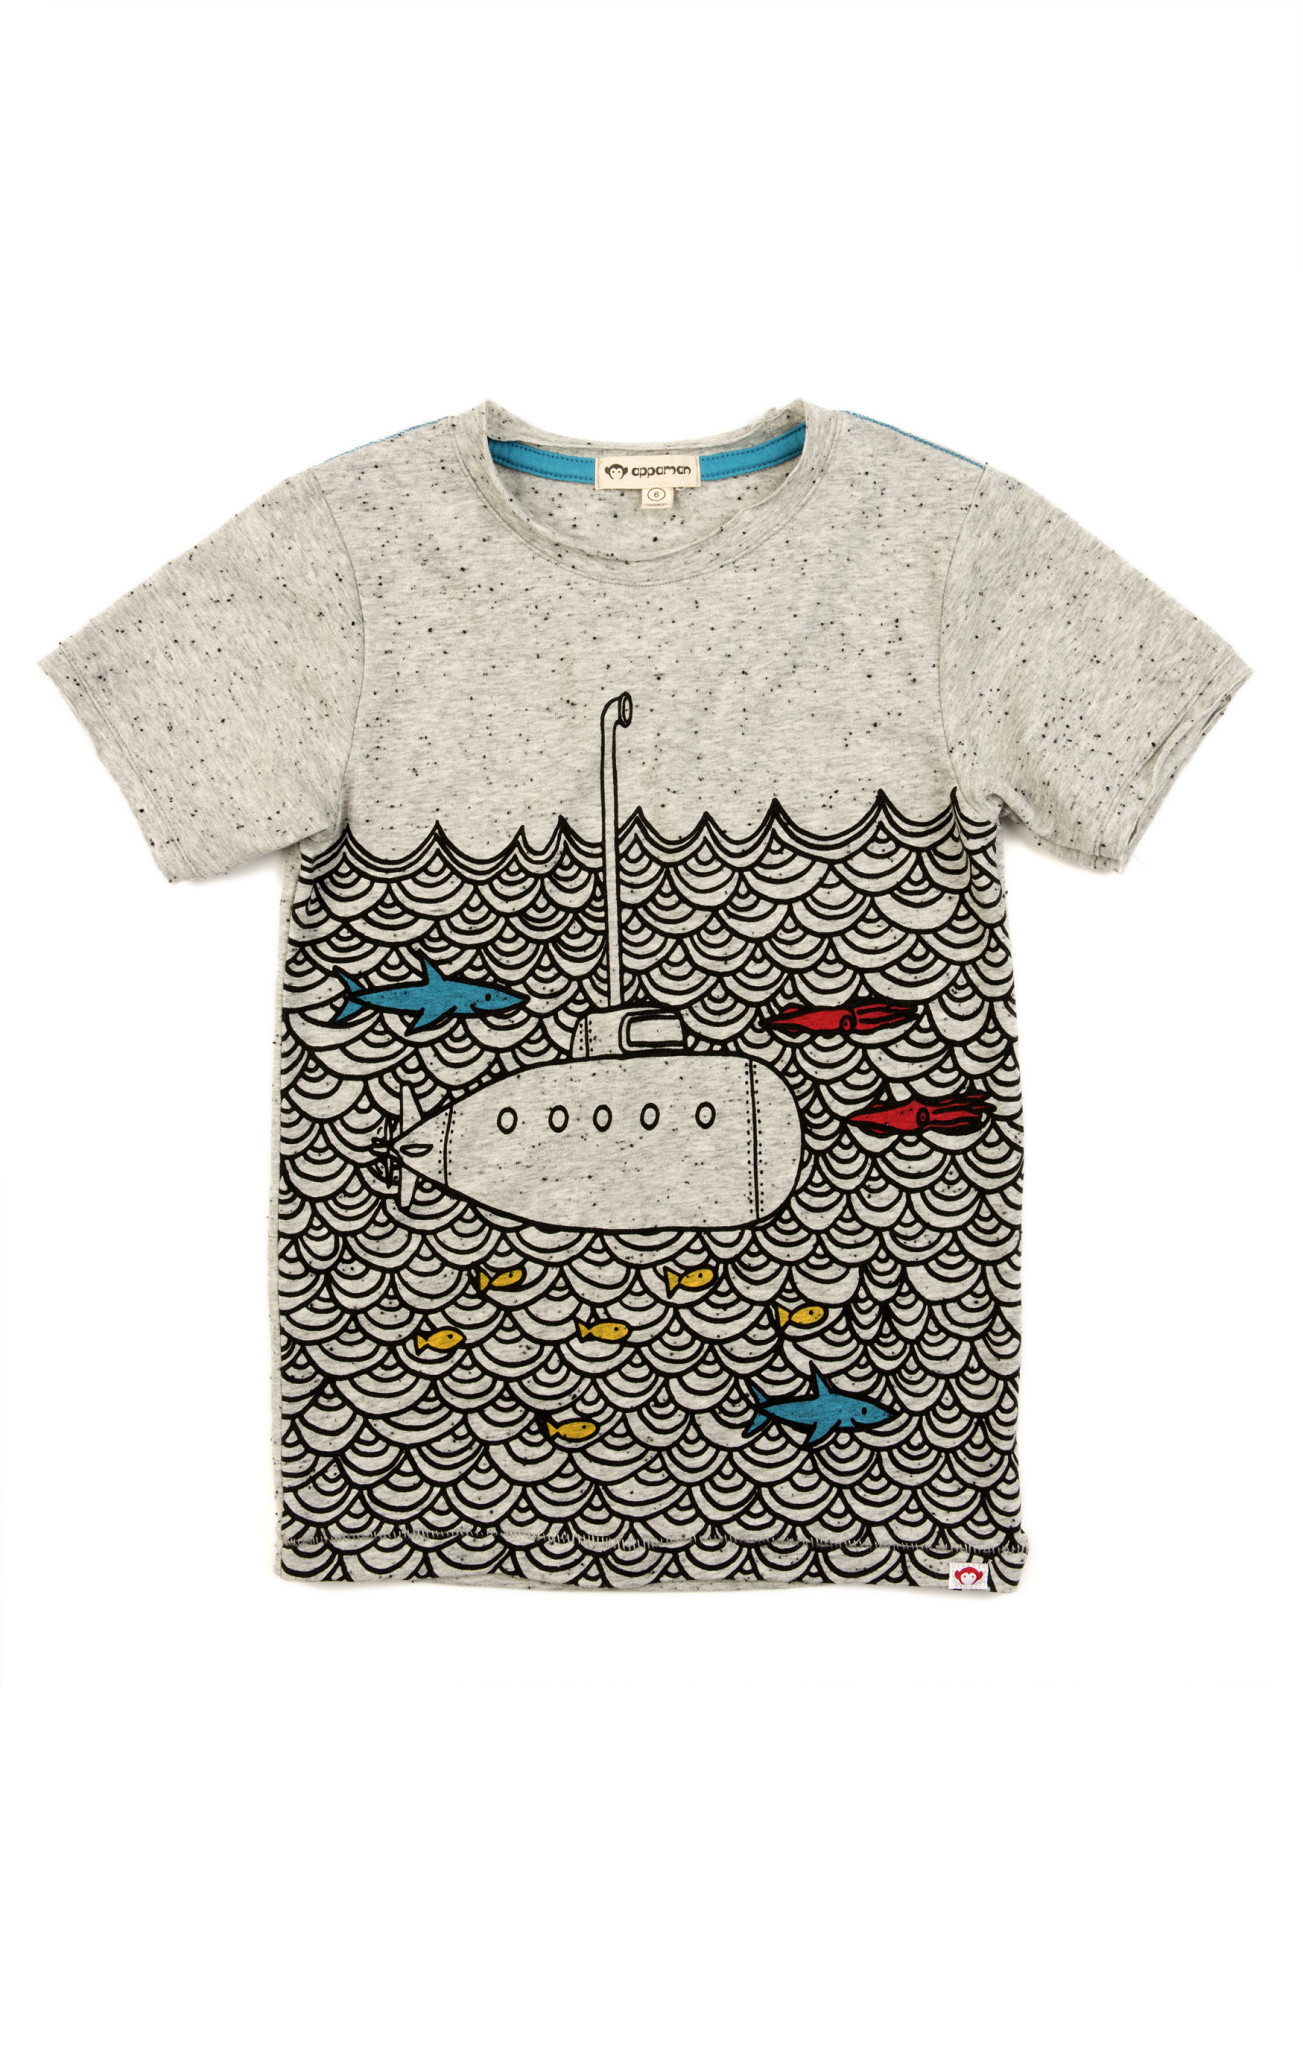 APPAMAN Graphic Short Sleeve Tee Submarine